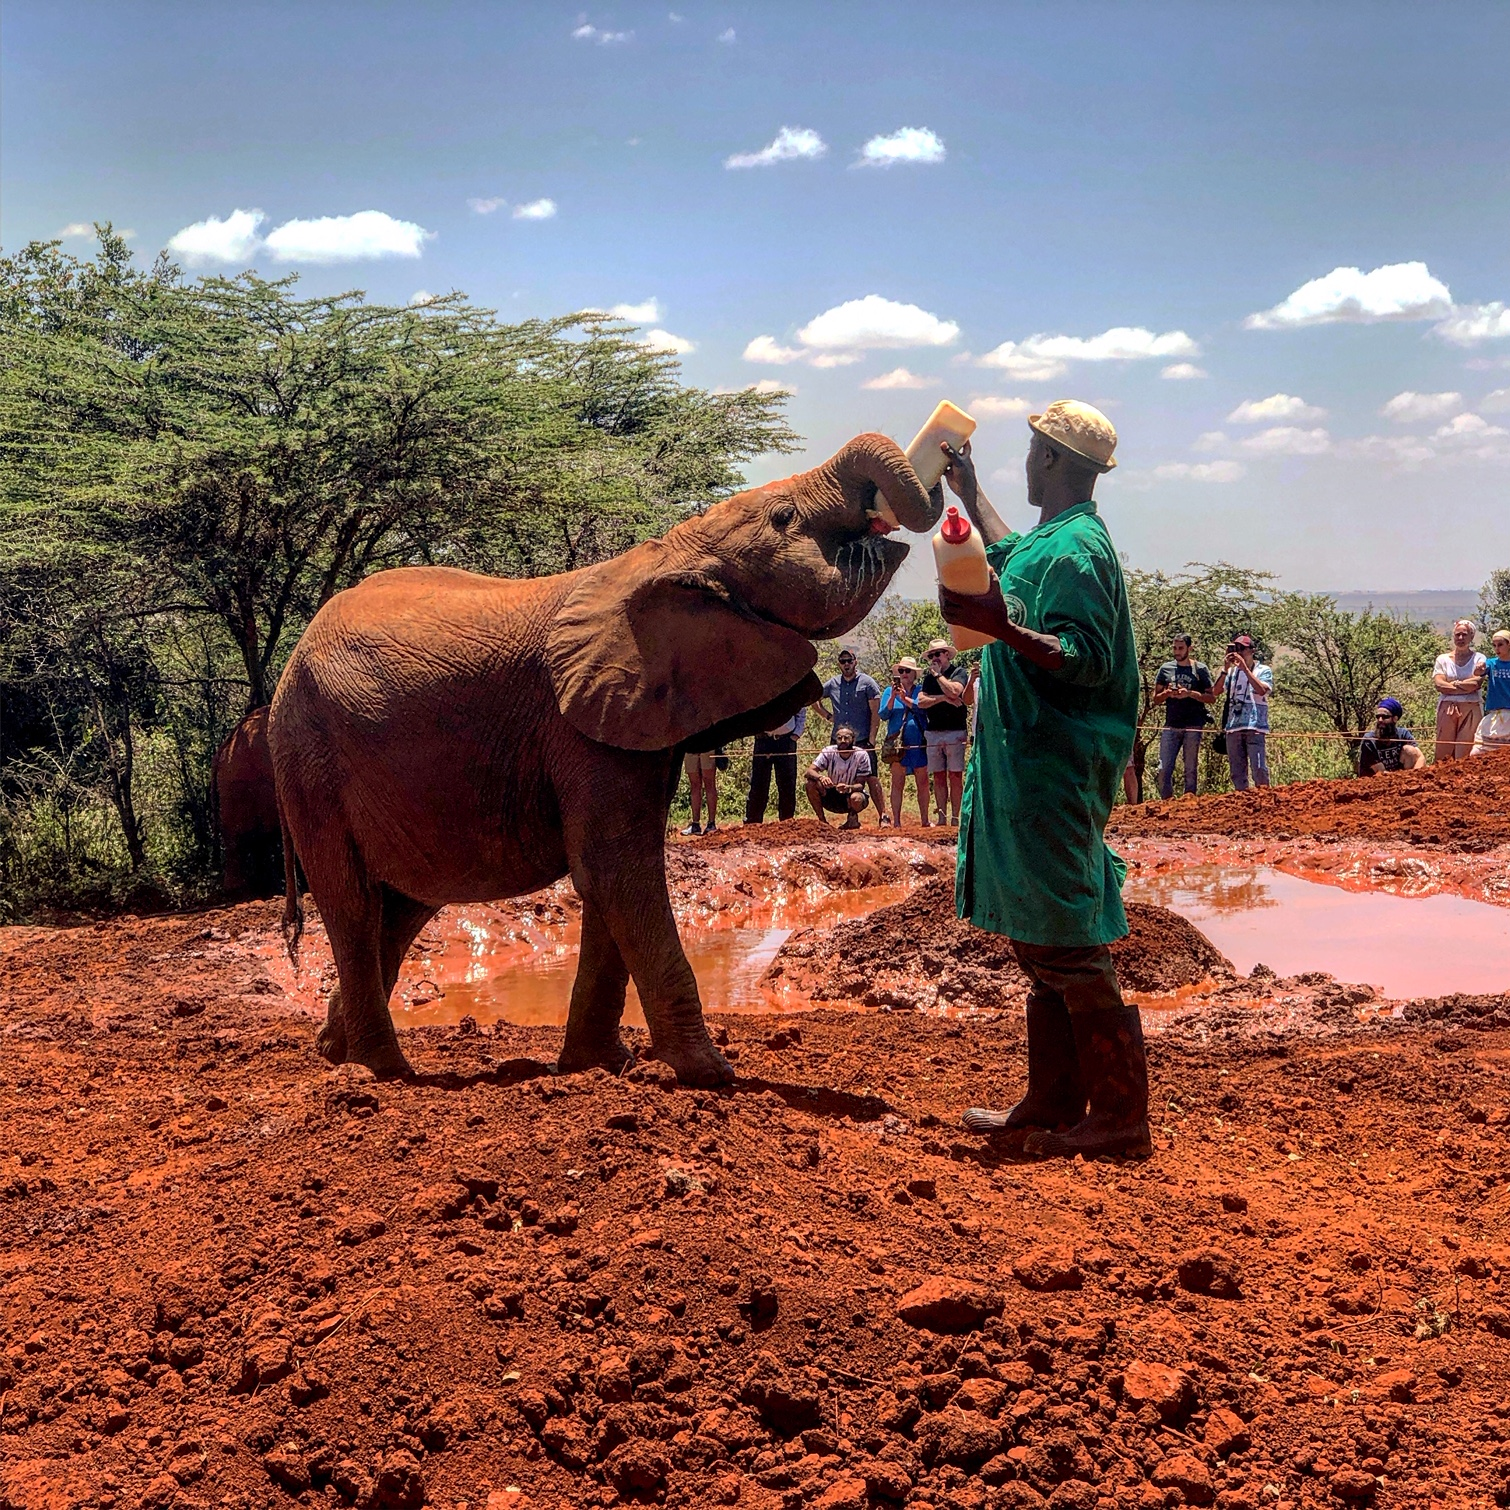 Before returning home, we stopped by the Elephant Orphanage and a few other places in Nairobi!